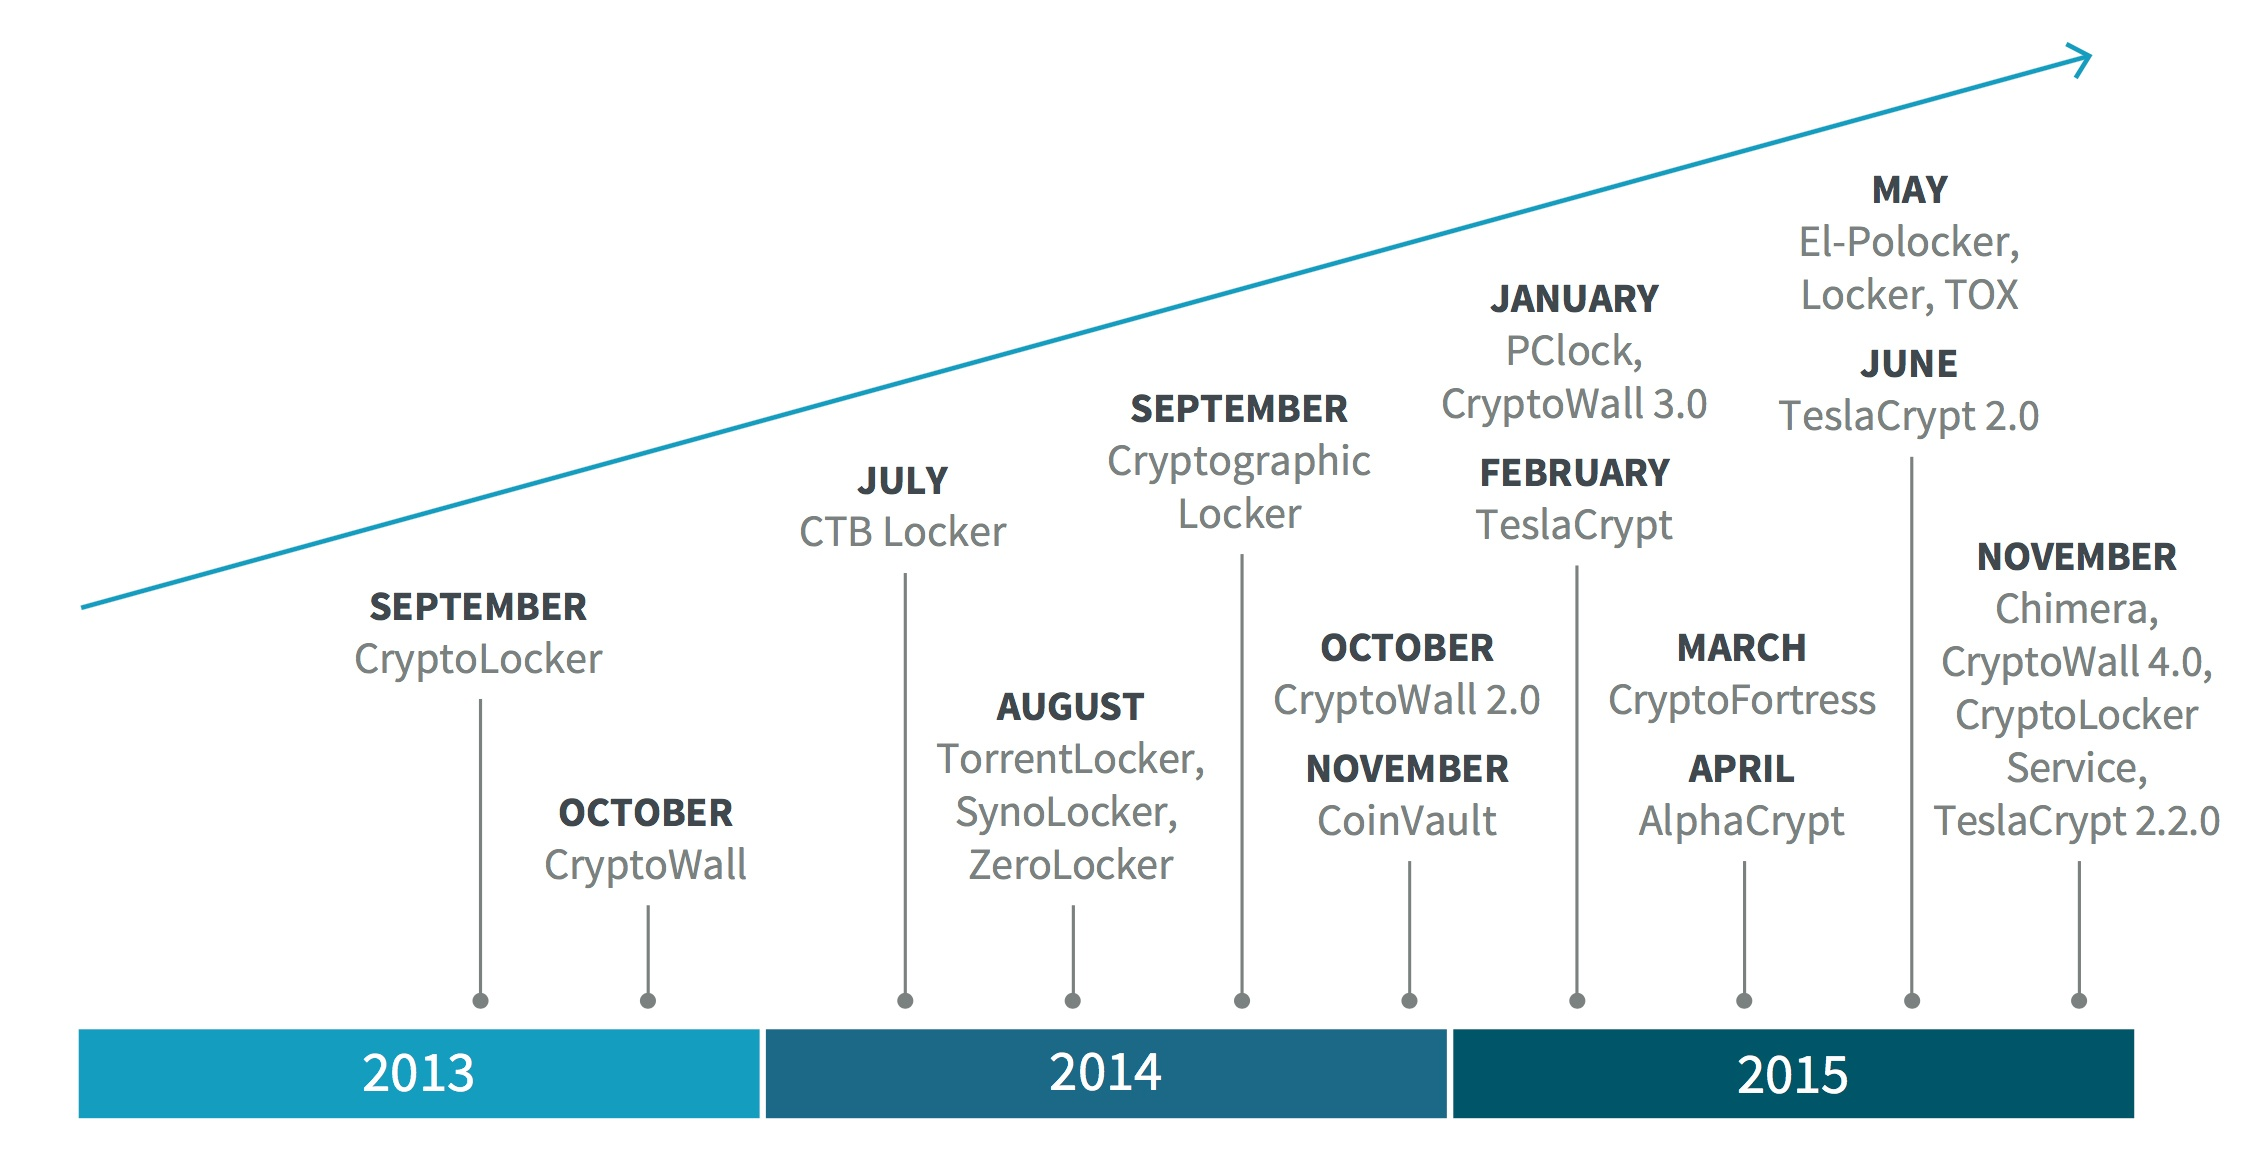 Ransomware Family Growth Since 2013